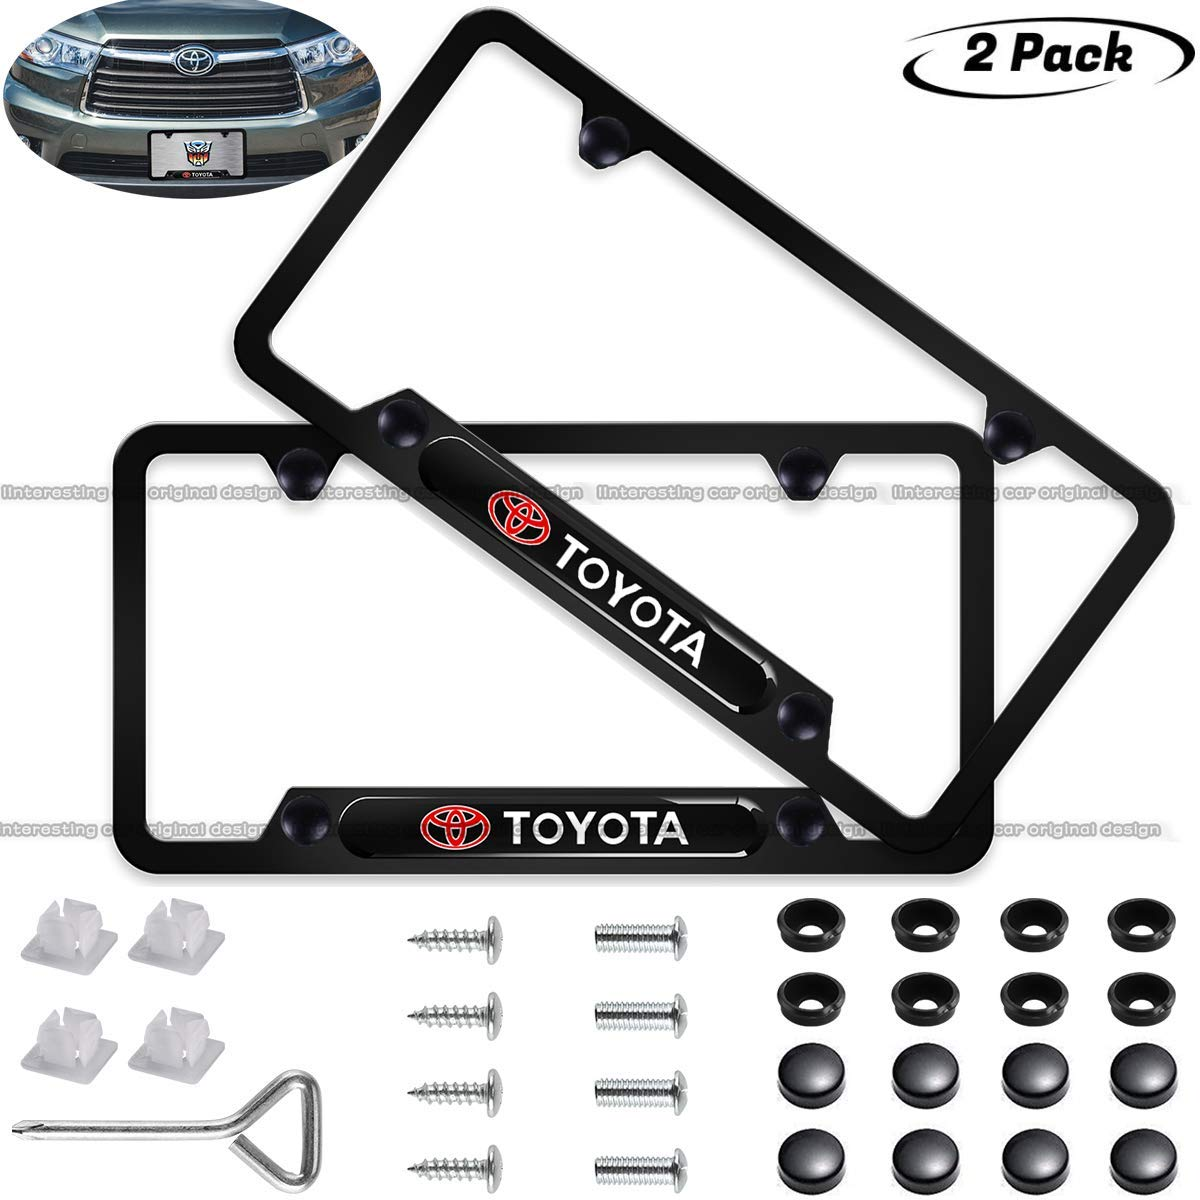 2pcs for Honda front and Rear License Plate Frames,Exclusively Newest Design Matte Aluminum Alloy License Plate Frame for Honda,Personalize and Decorate Your Honda License Plate Cover Screw Caps Included